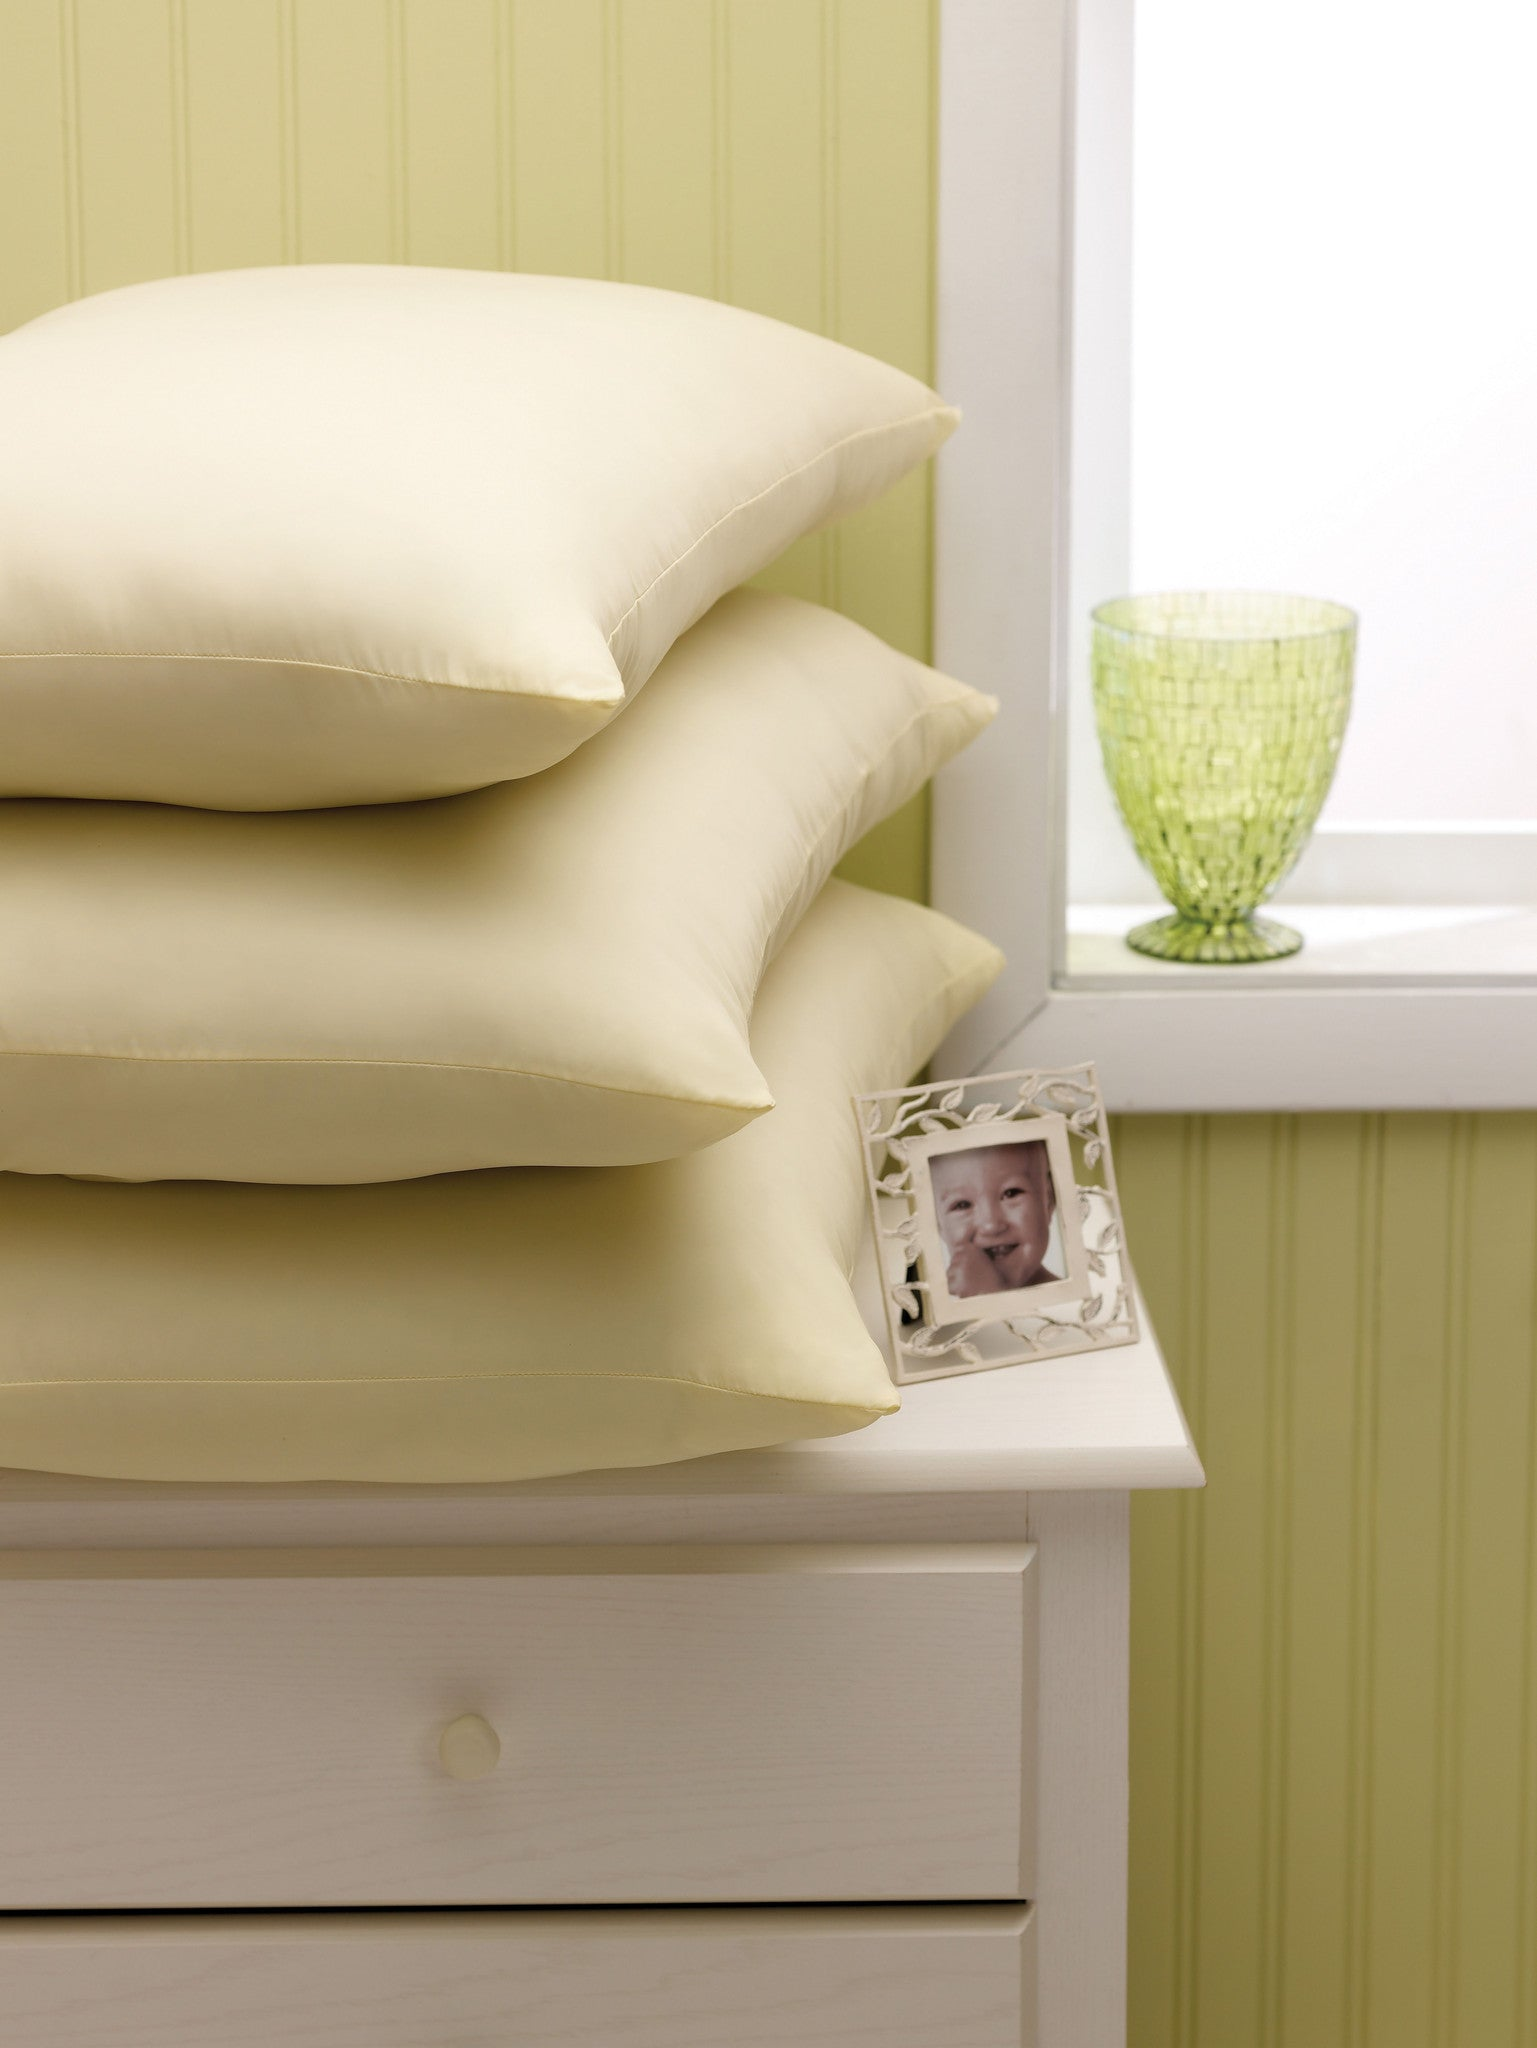 Stay Fluff Pillows 1 Dozen Bh Medwear